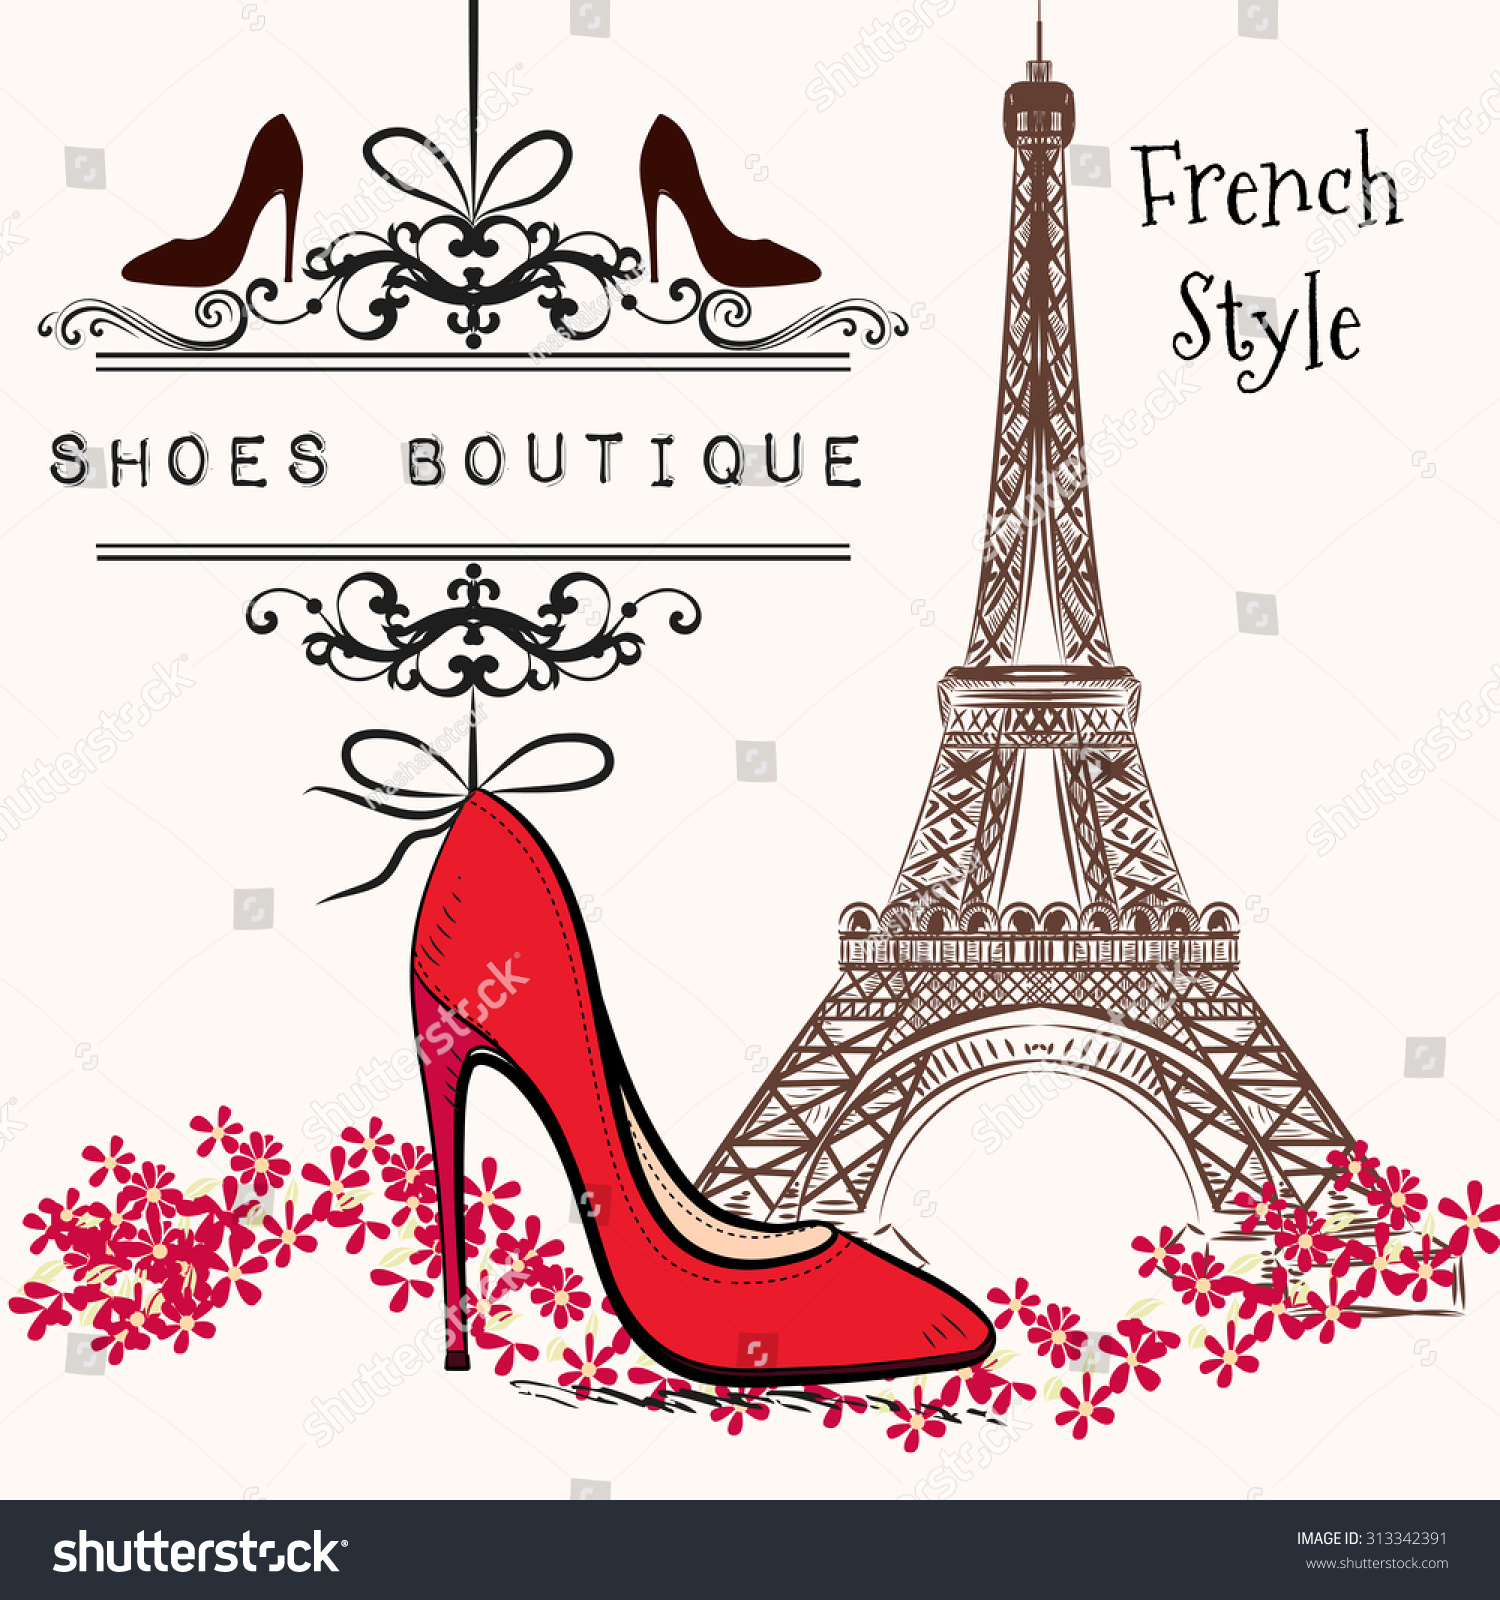 Advertising Illustration Shoes Boutique Red Shoe Stock Vector ...